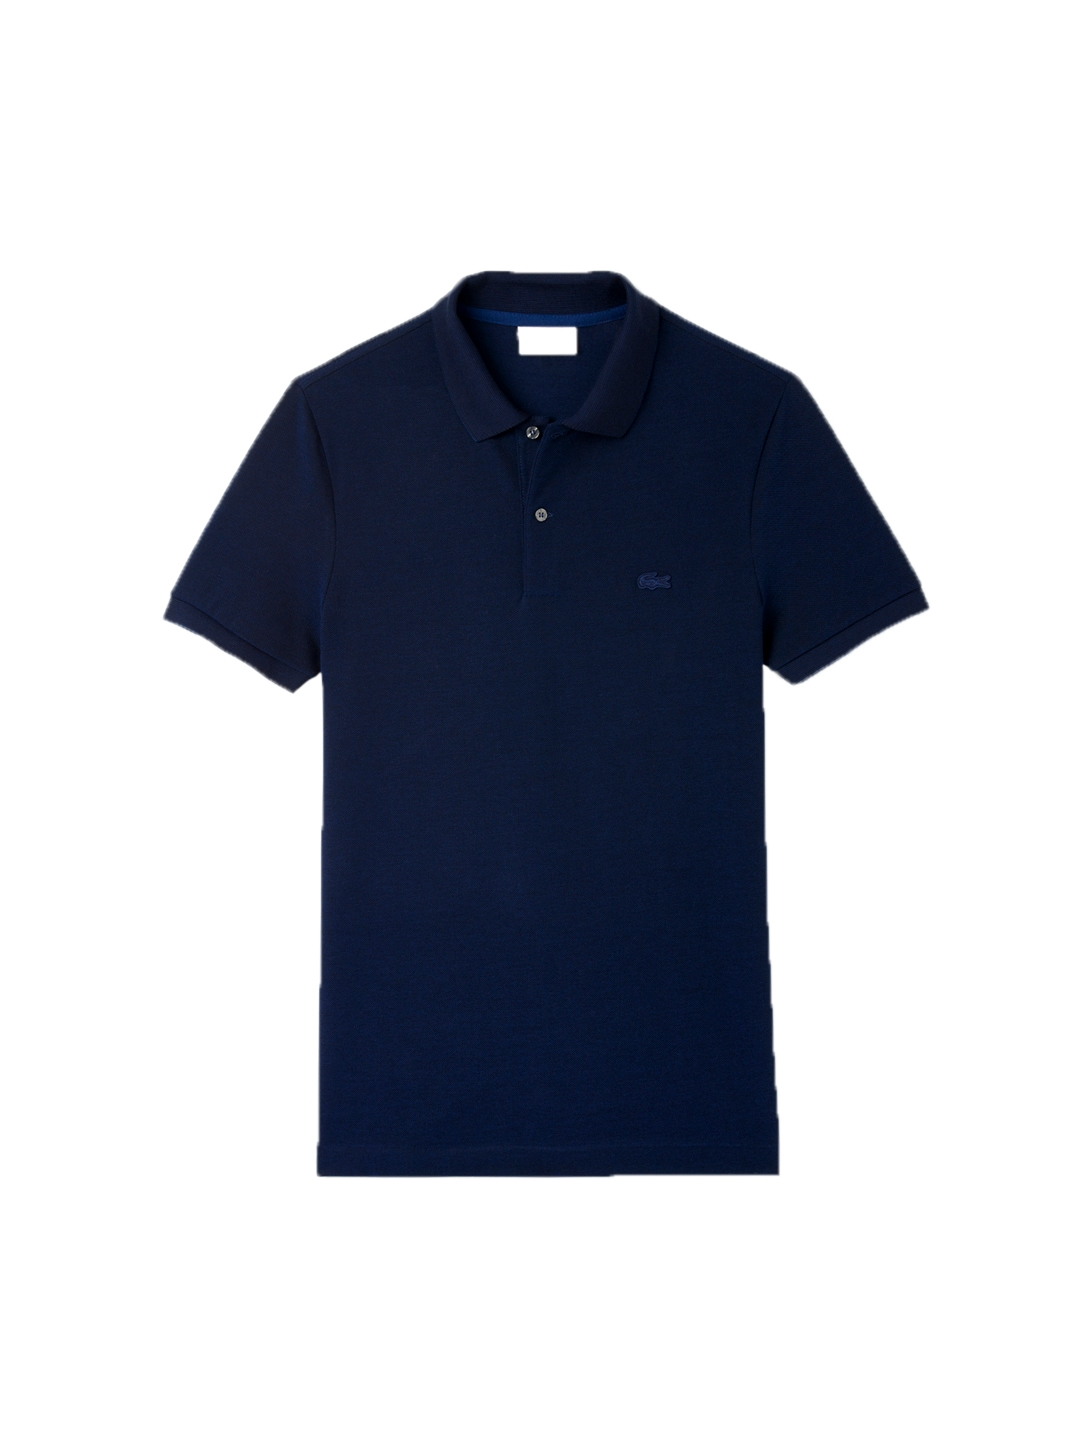 Pique Fit Caviar Slim Men Tshirts Bicolor Buy Blue Lacoste Polo kXiZuP